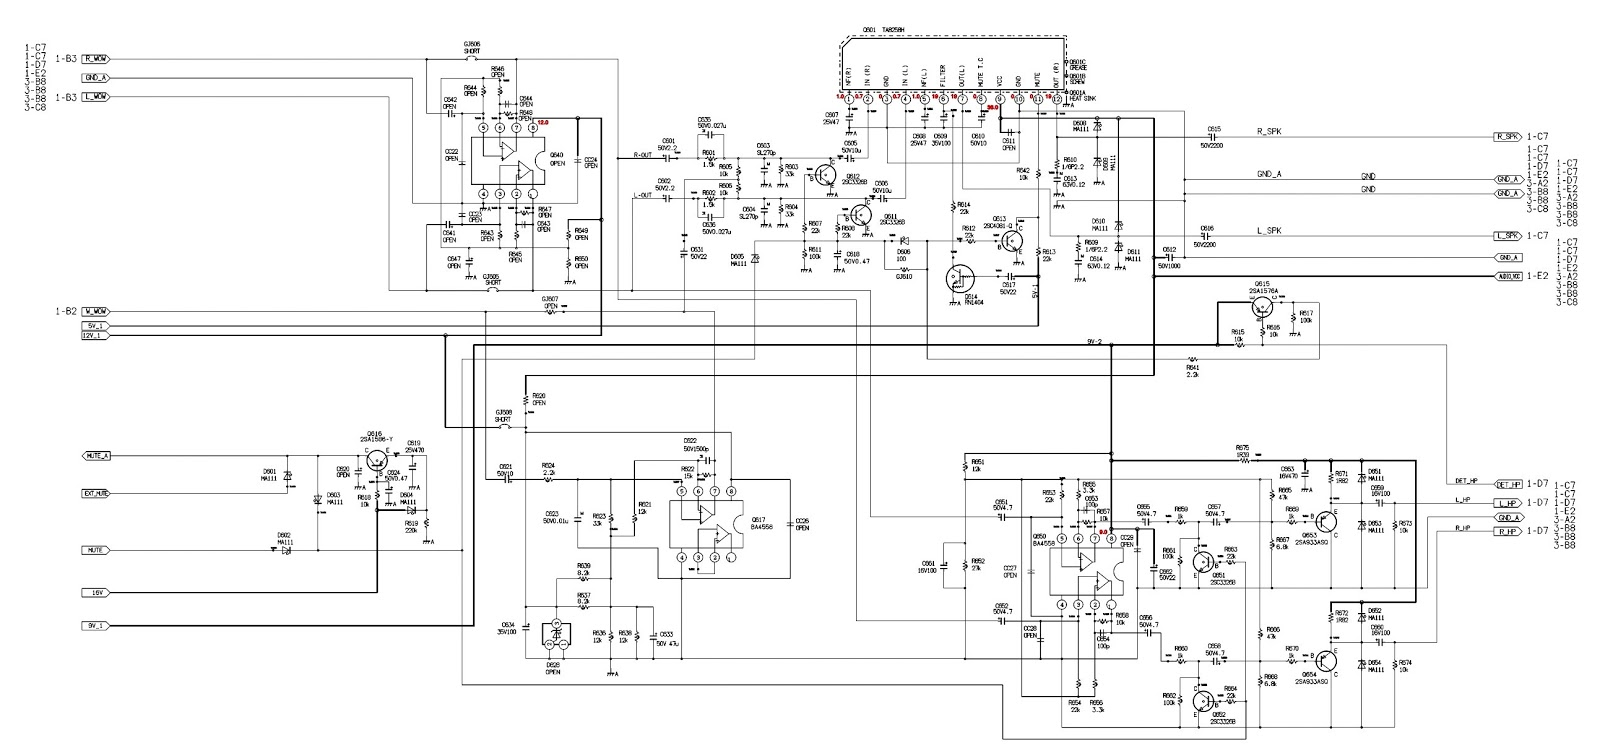 Toshiba Led Tv Schematic Diagram Wiring Diagram Library